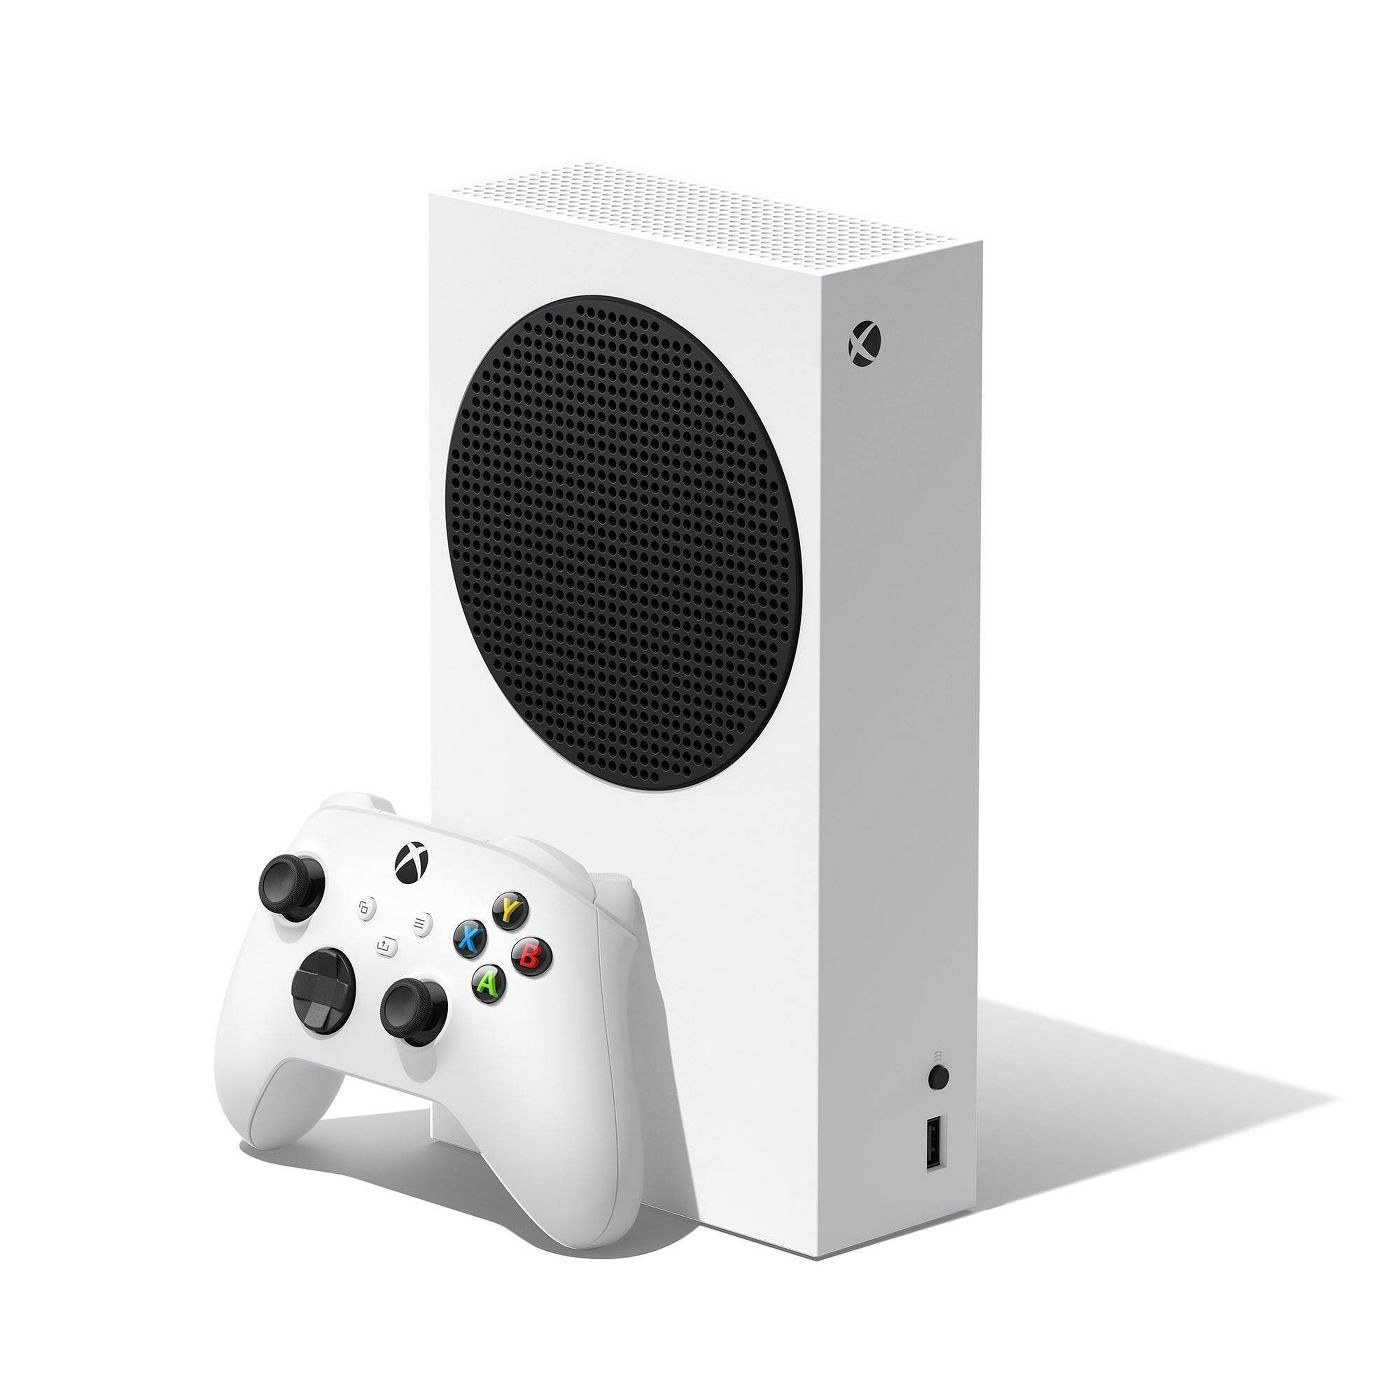 An Xbox series S console